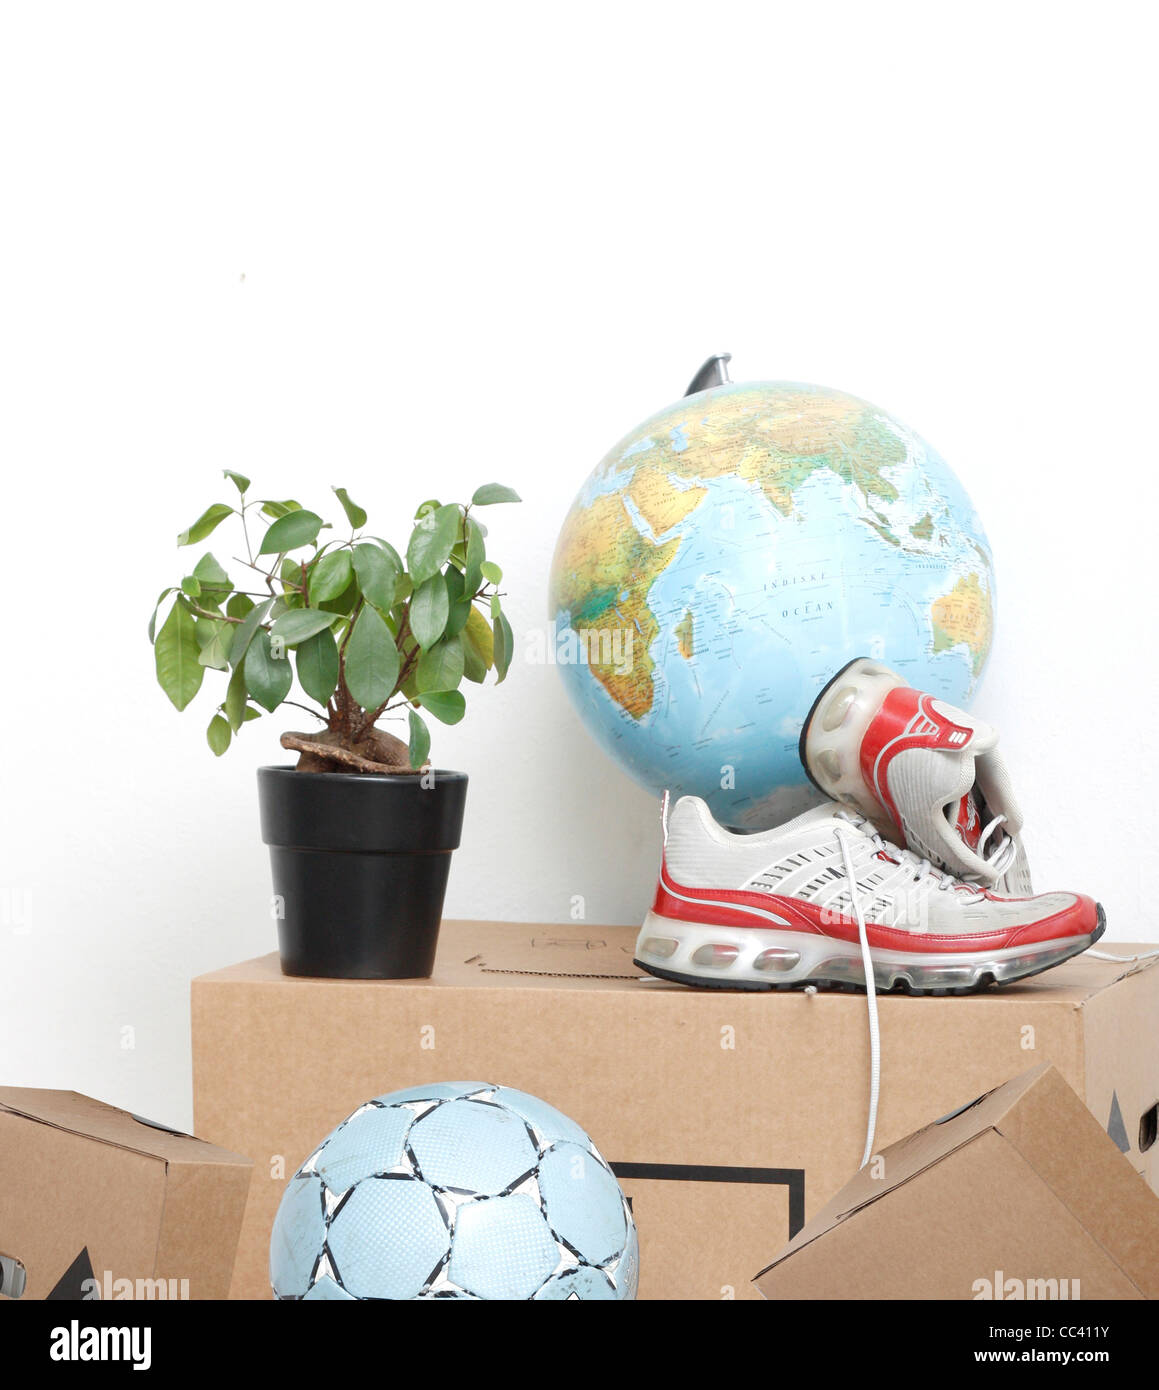 Moving boxes and possessions - Stock Image